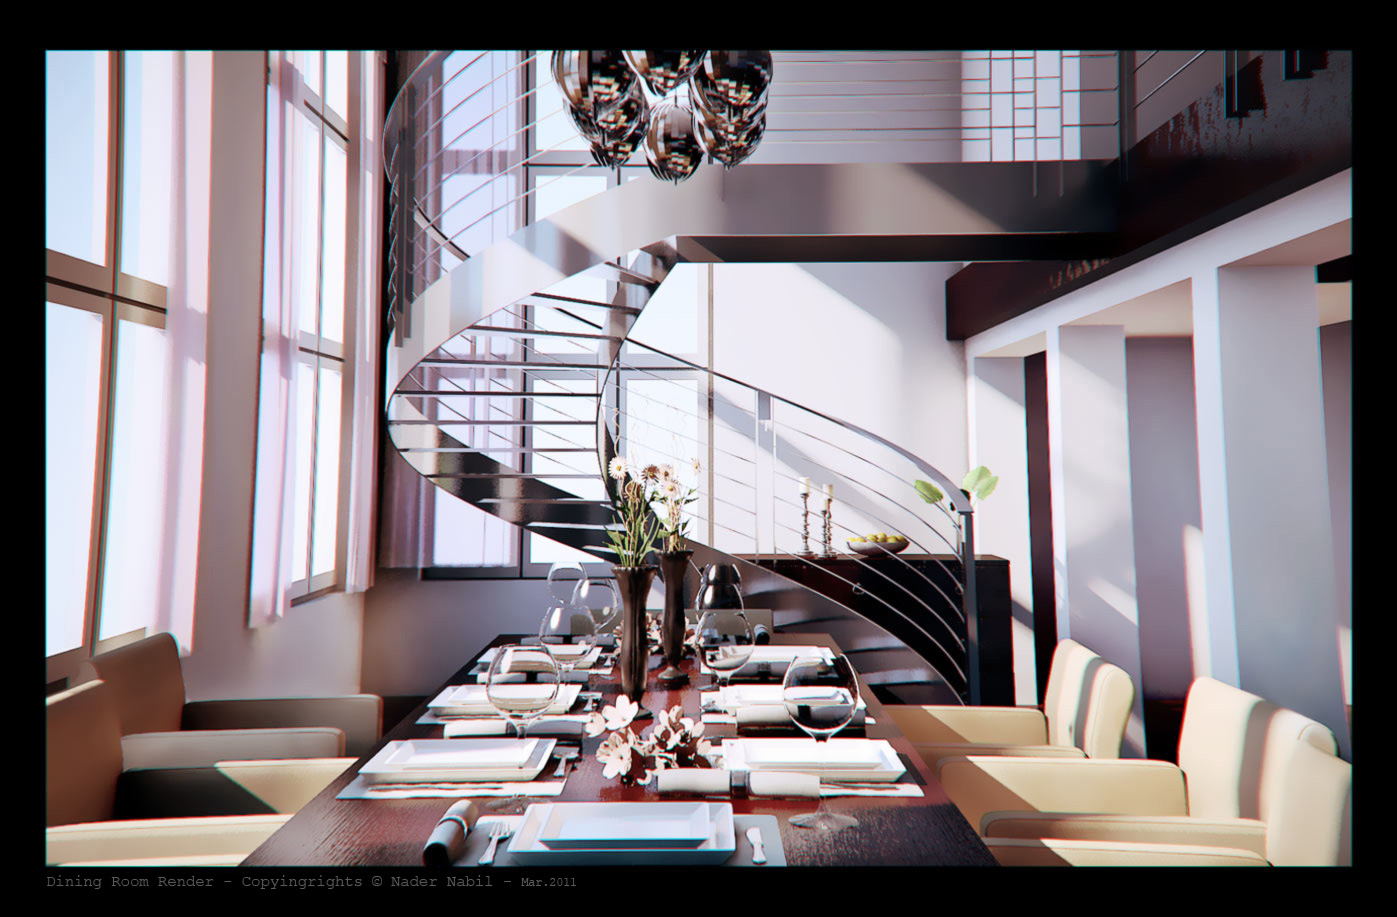 Dining Room render